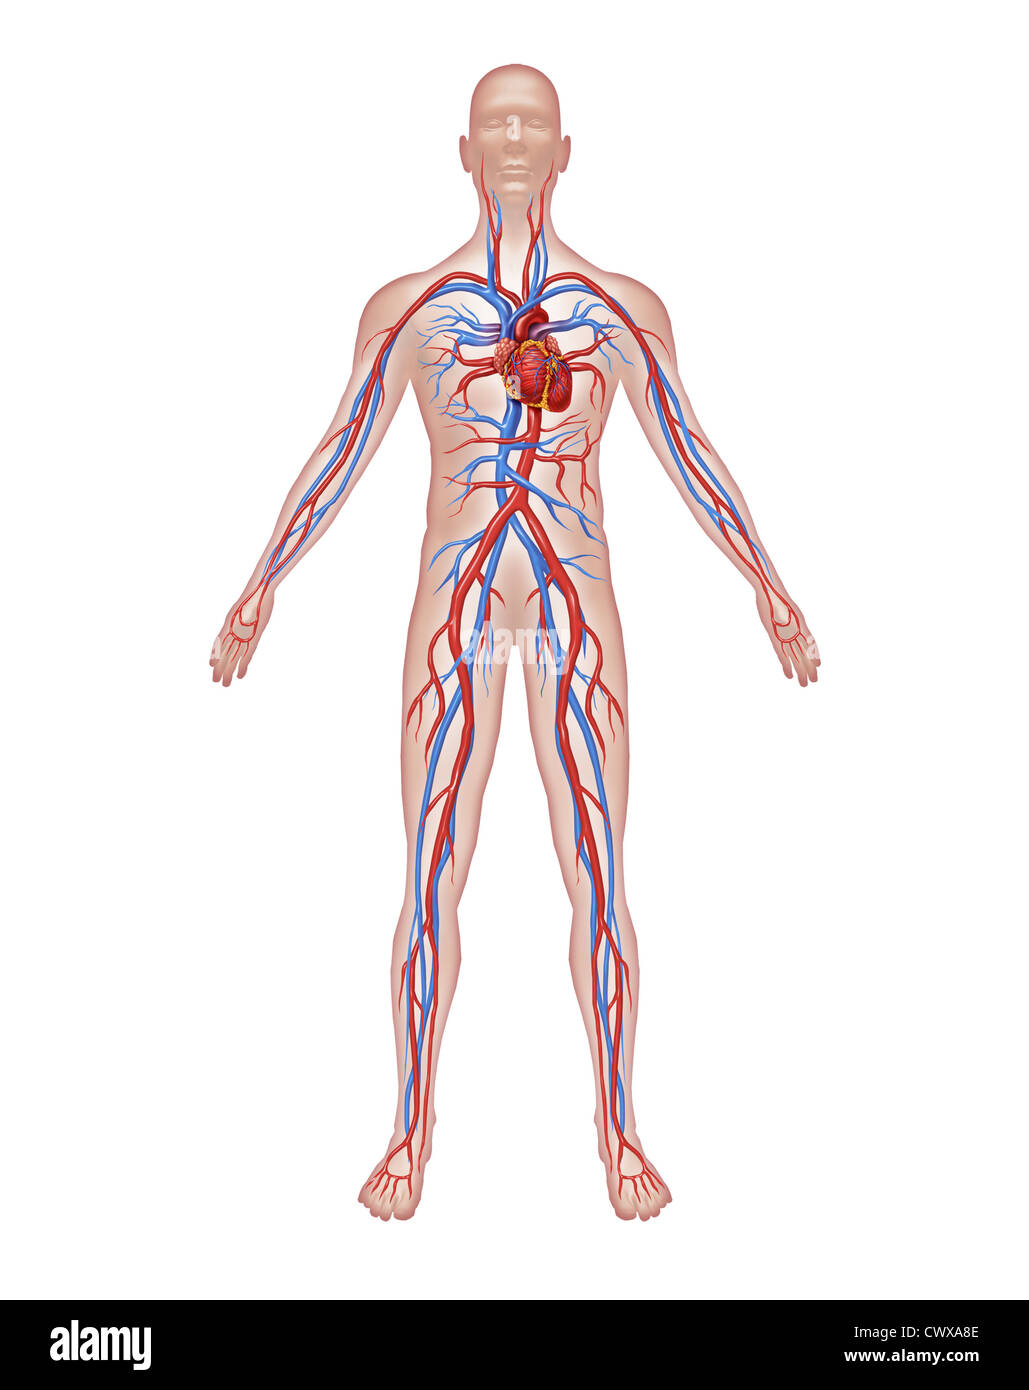 Human Circulation Anatomy And Cardiovascular Heart System With A Stock Photo